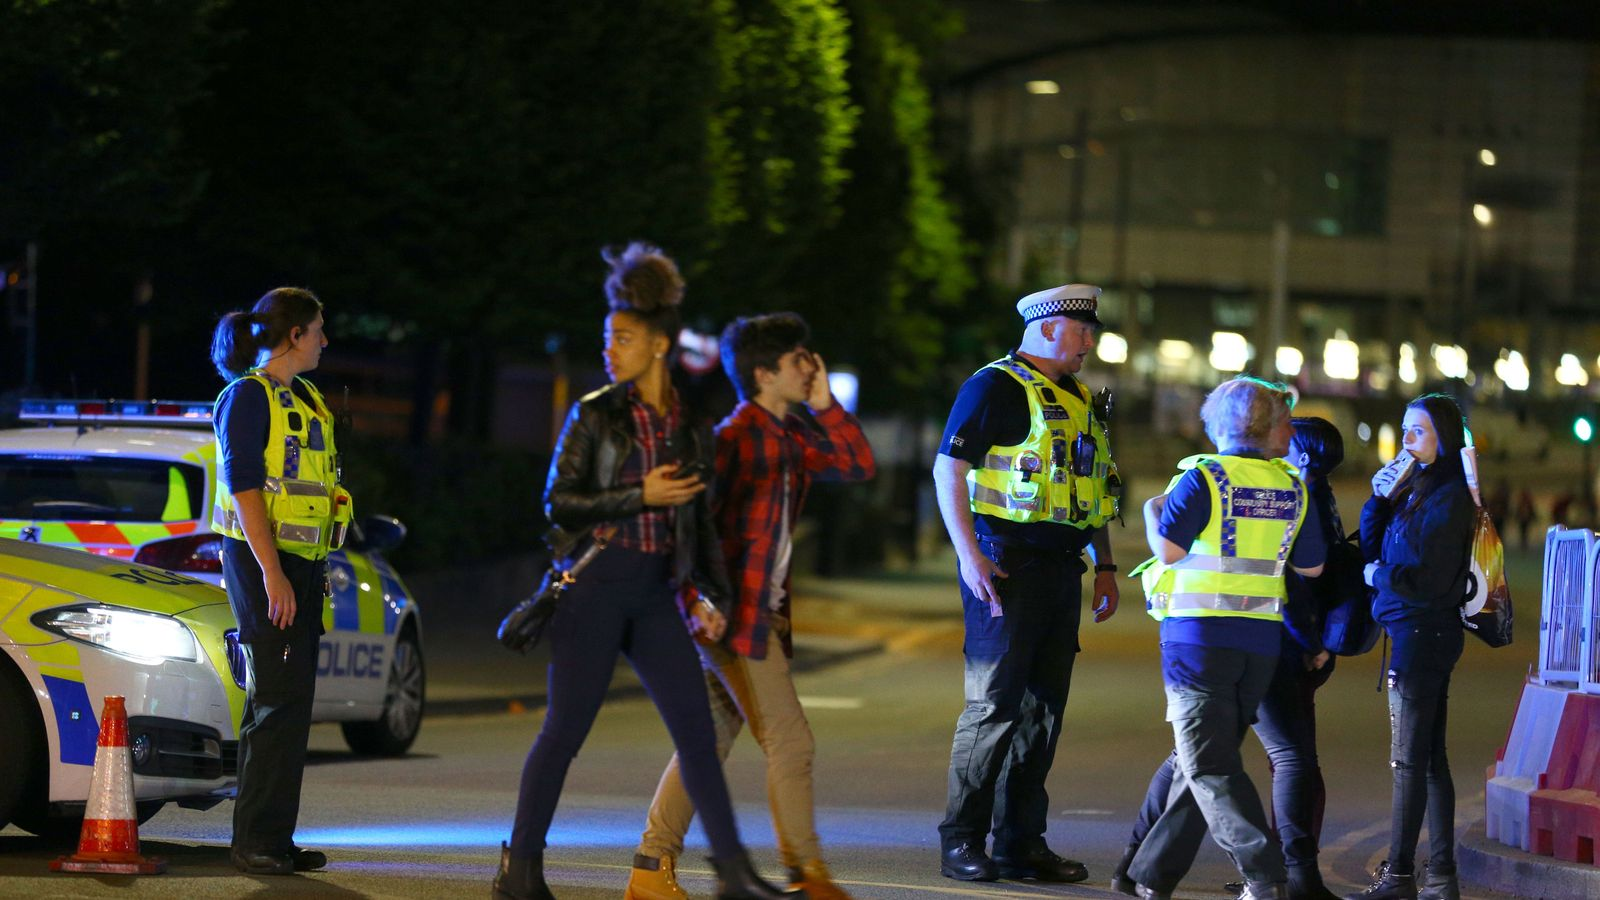 Manchester Attack: Three Men Arrested in Connection With Bombing